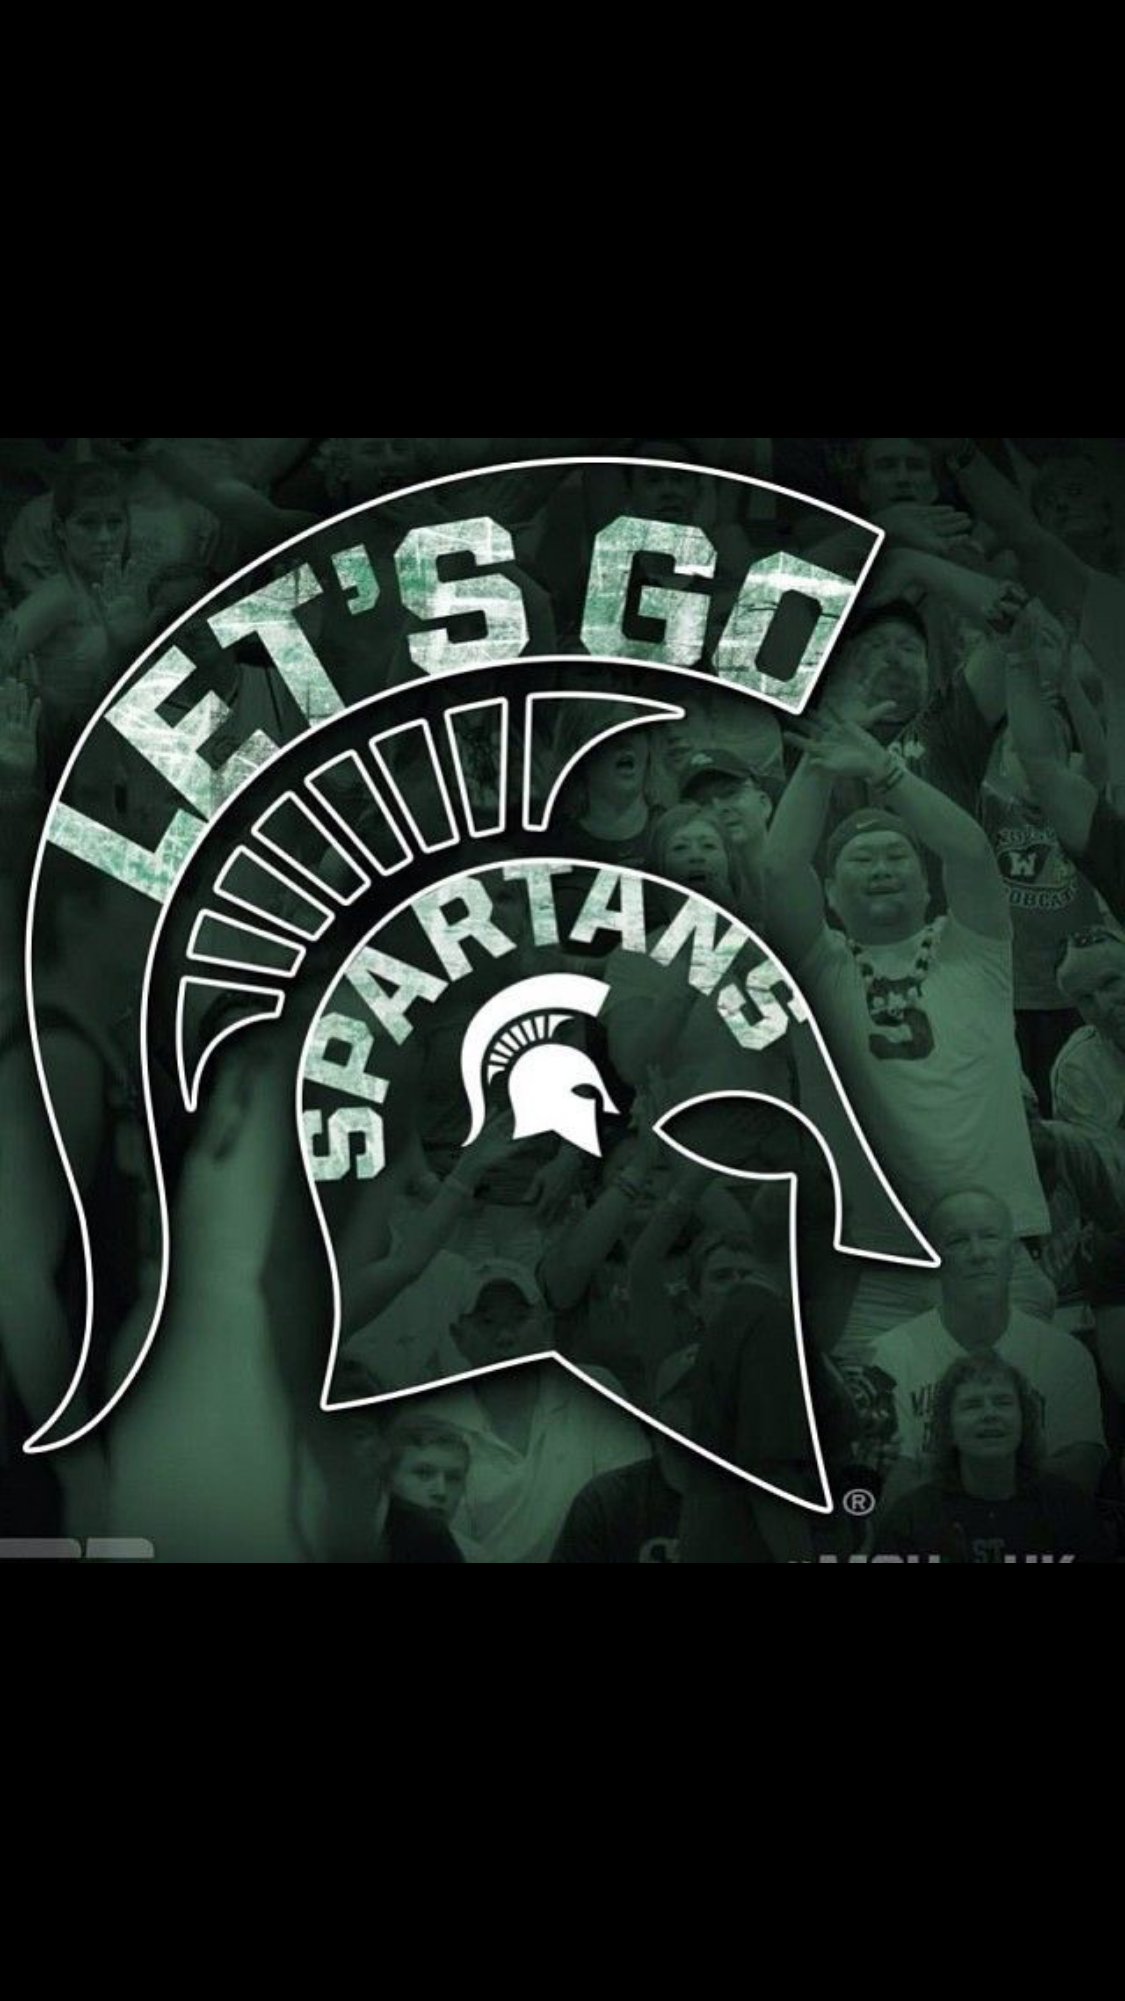 Pin by John Soyars on Sparty On! Michigan state football